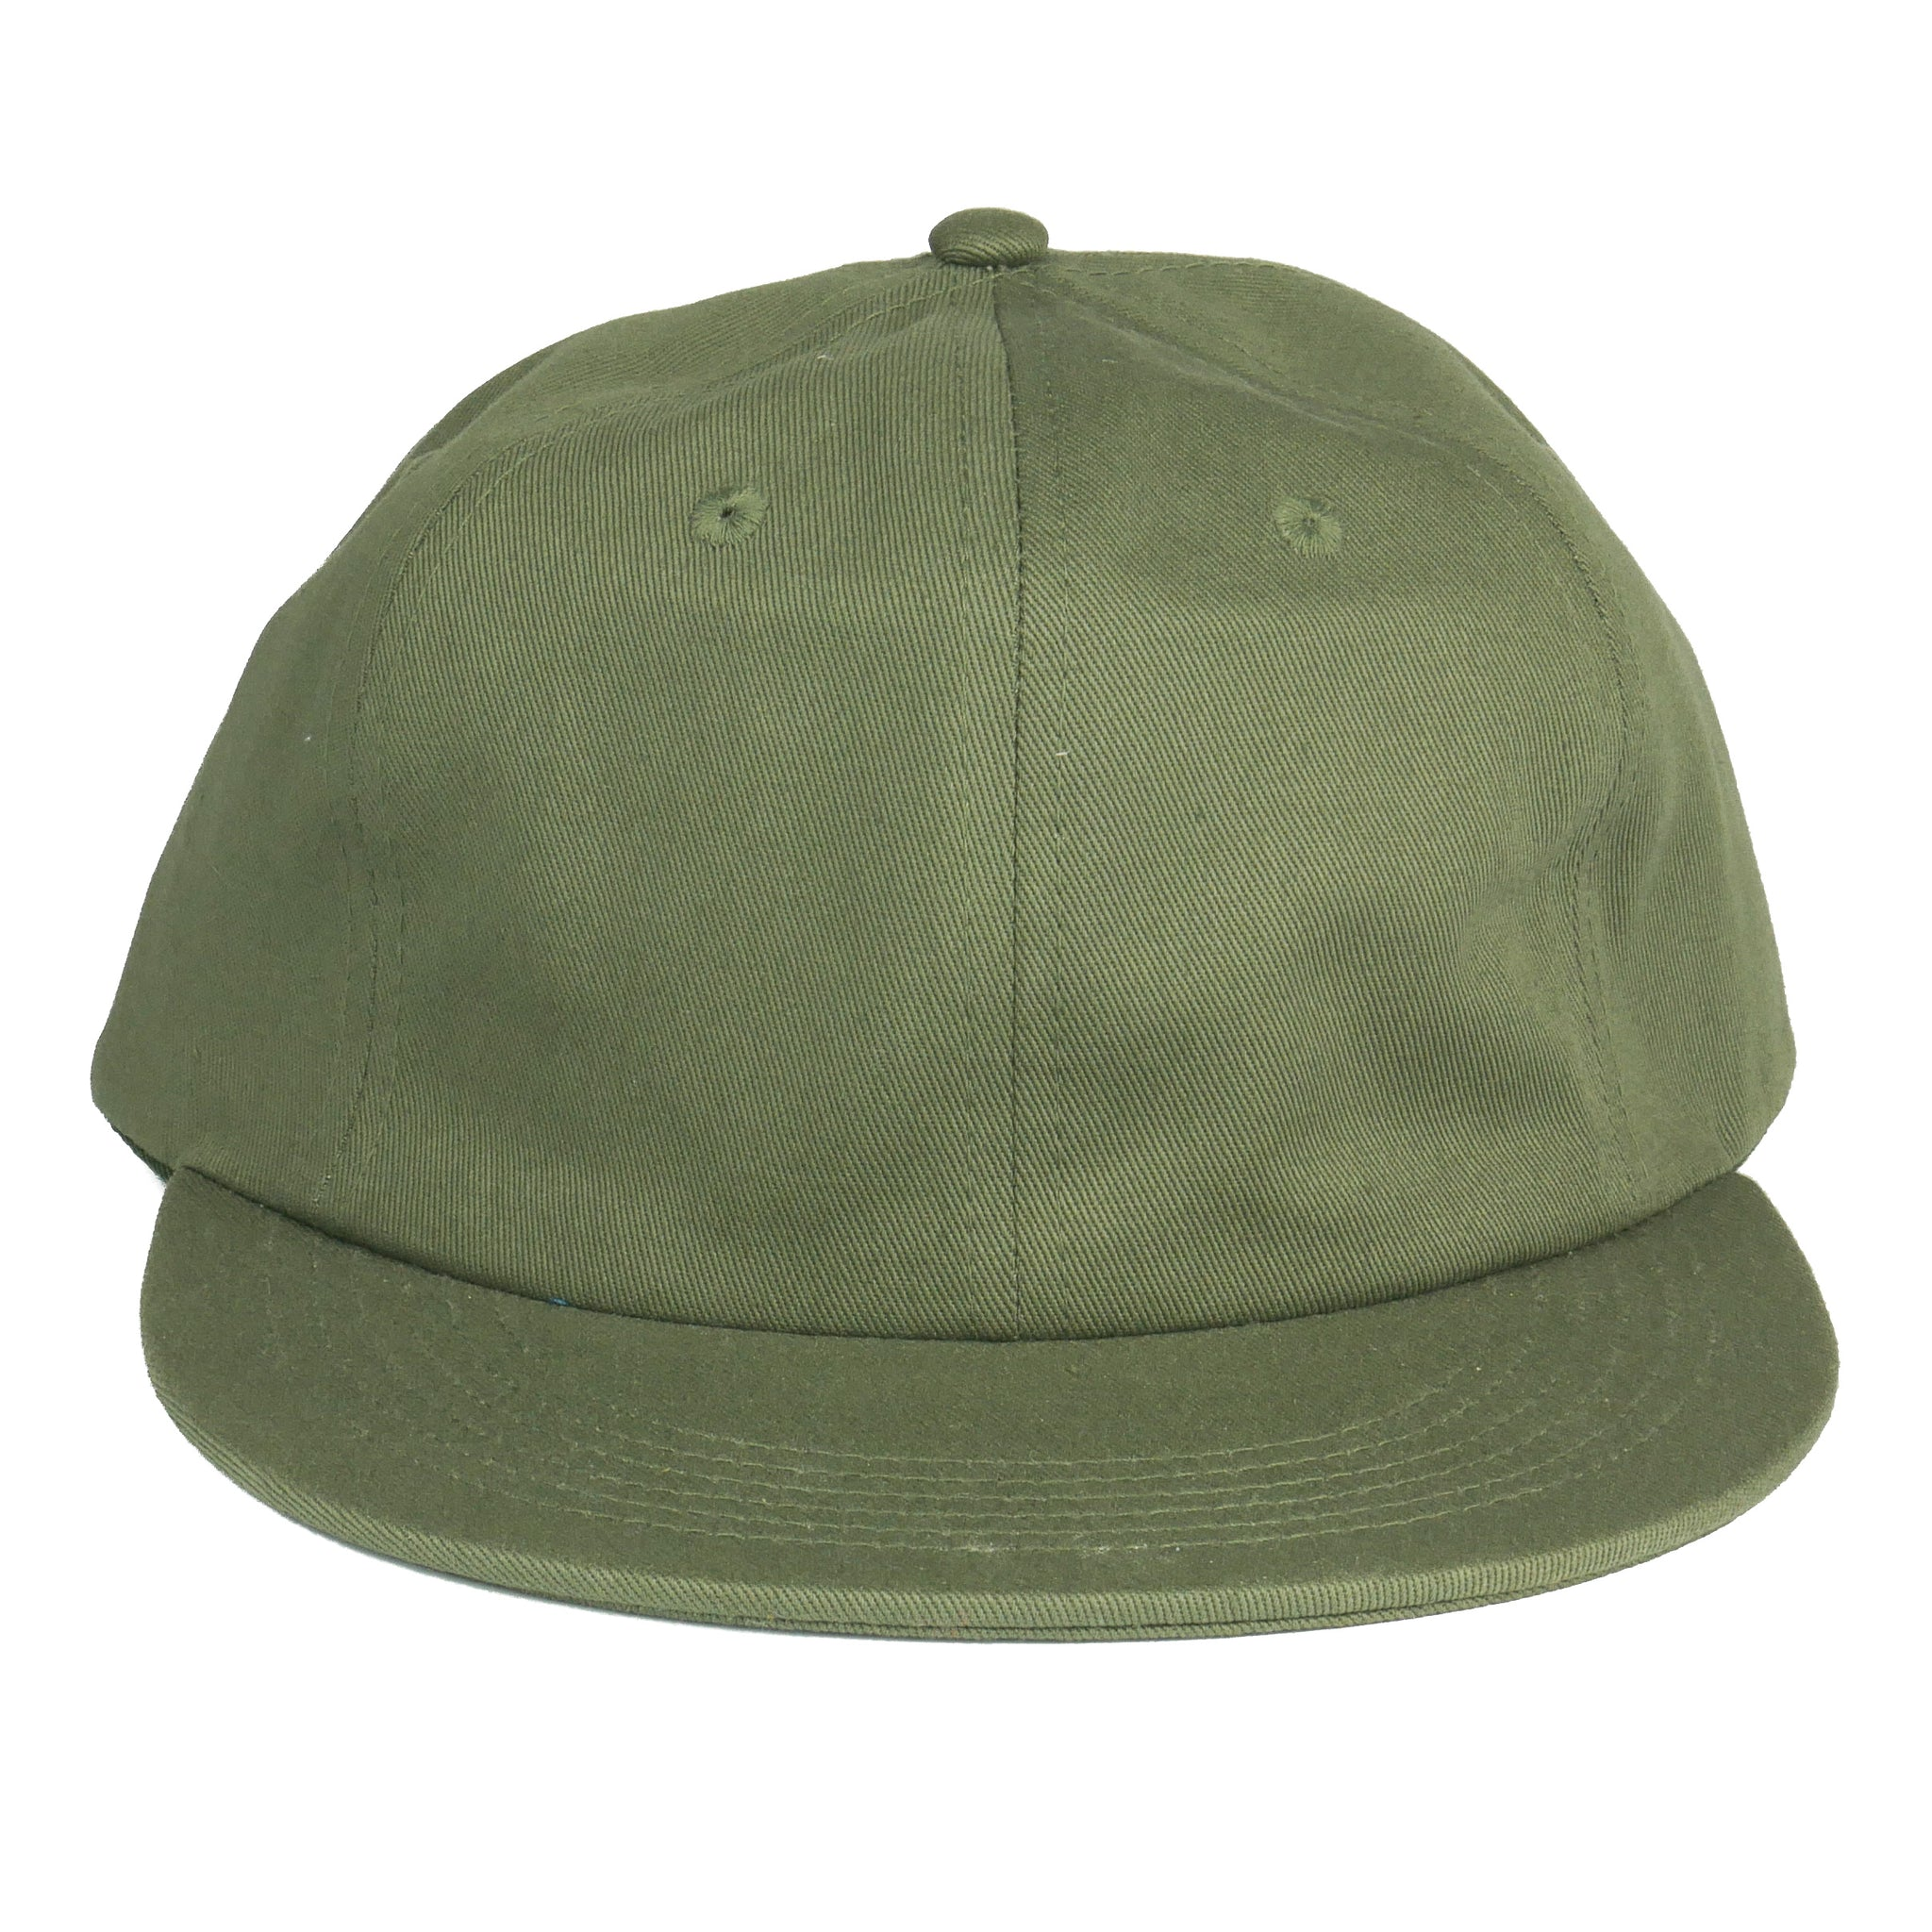 The Easy - 100% Cotton - Olive